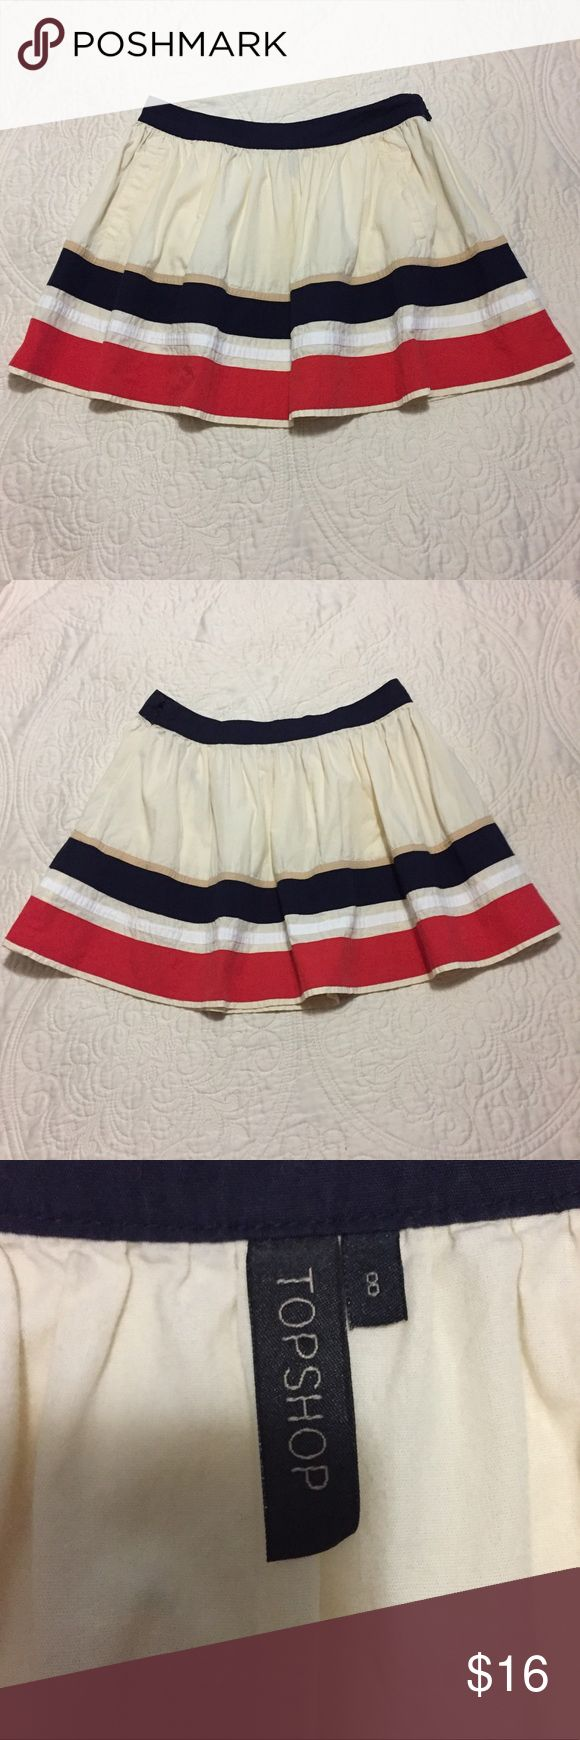 "Cute Topshop Skirt US Size 8 Euro Size 36 Topshop skirt. Great condition. Size 8. Colors: off white, navy blue and red. Laying flat from top to bottom it measures 15.5"". Topshop Skirts Mini"